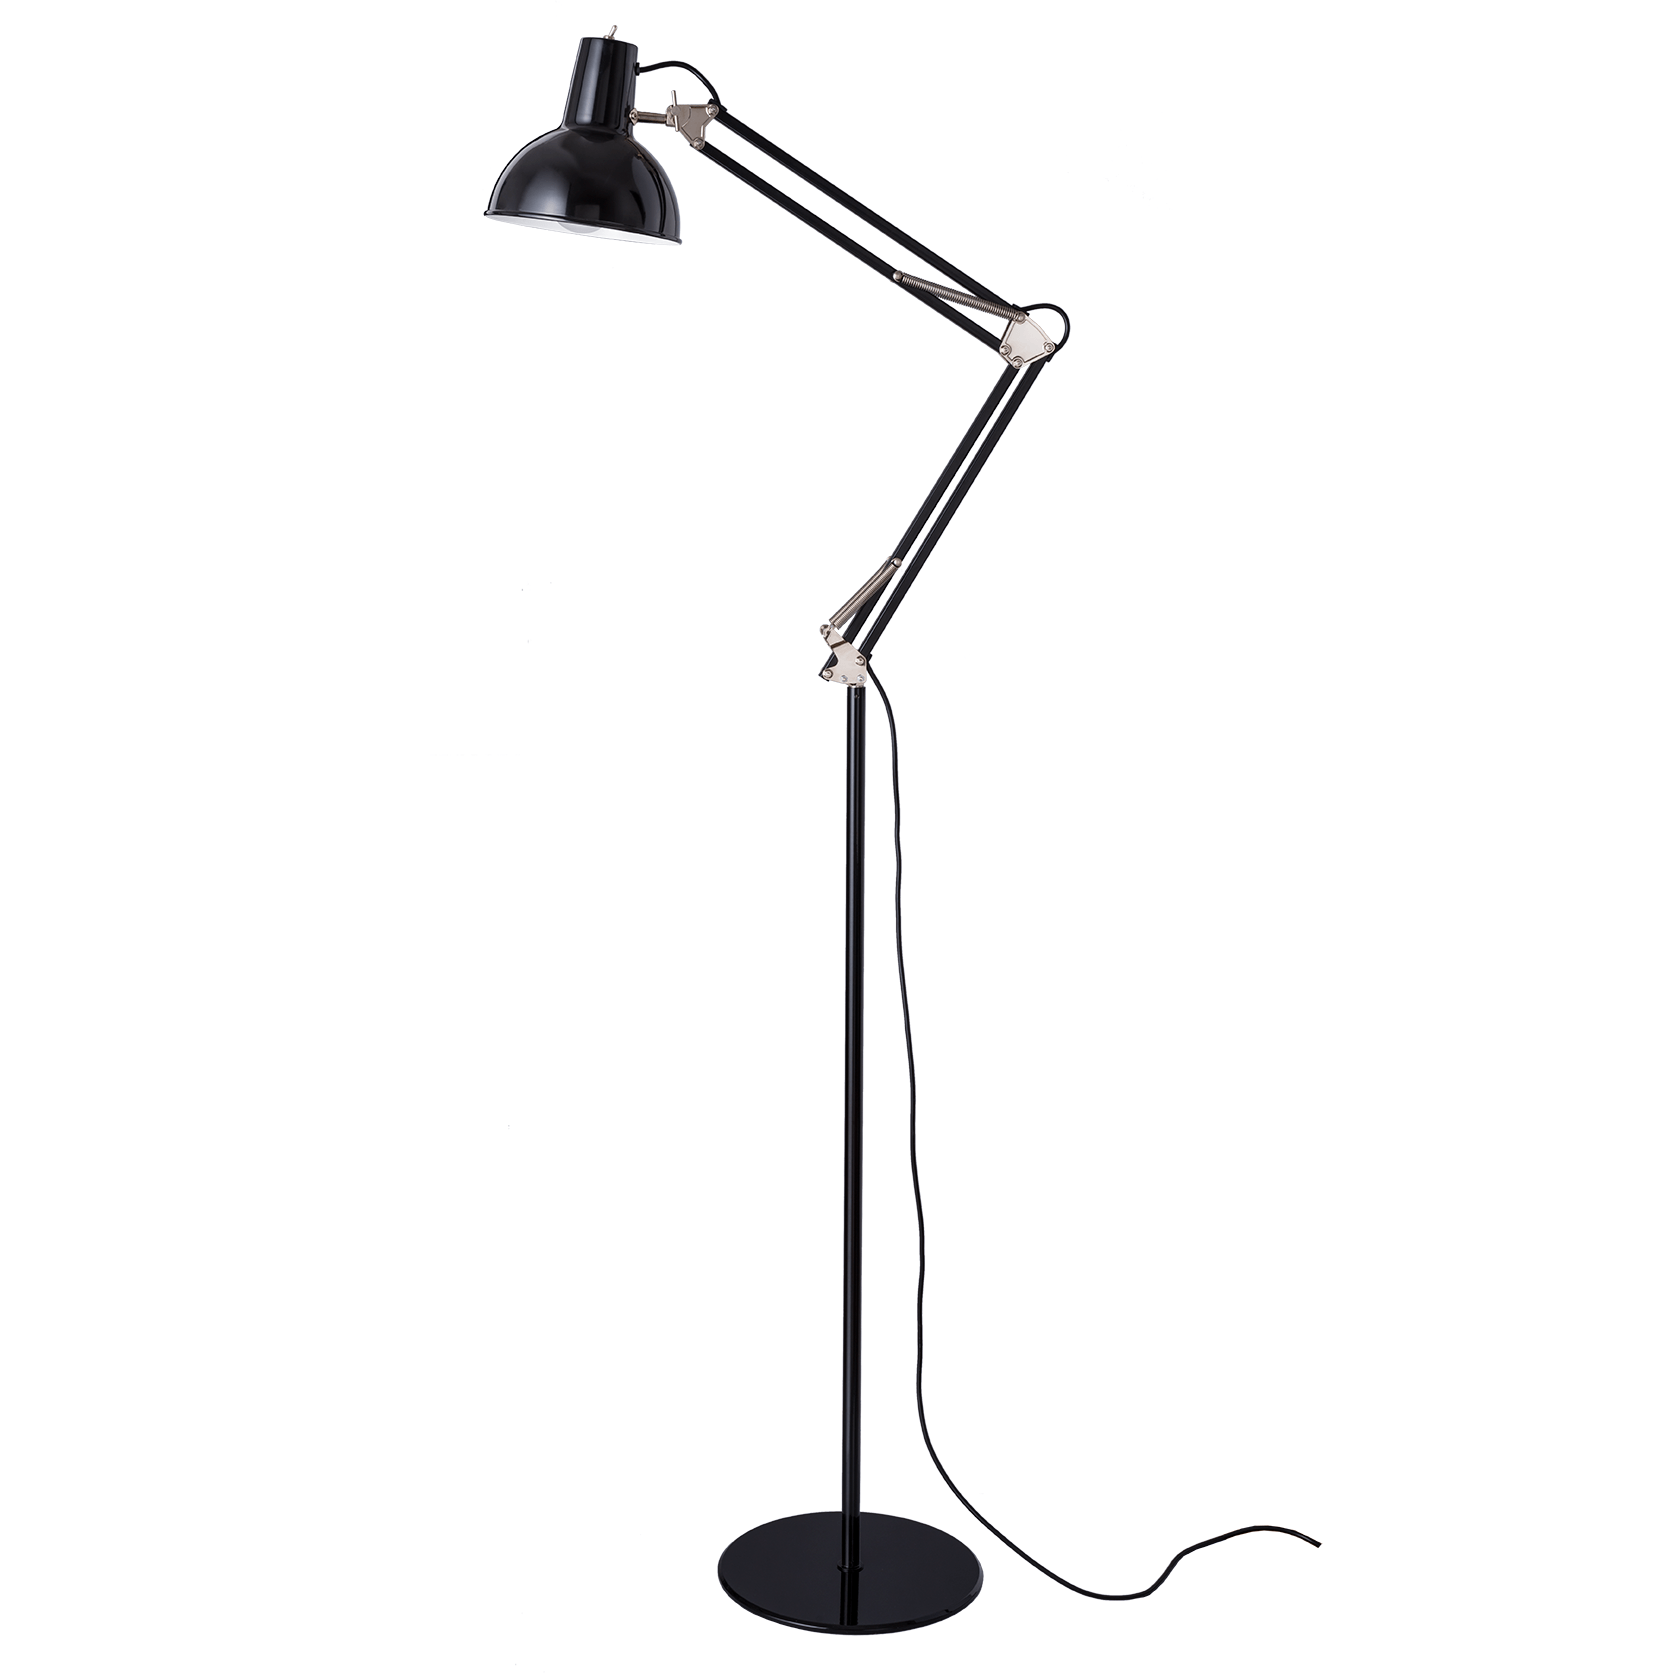 Midgard Spring Balanced Floor Light Black